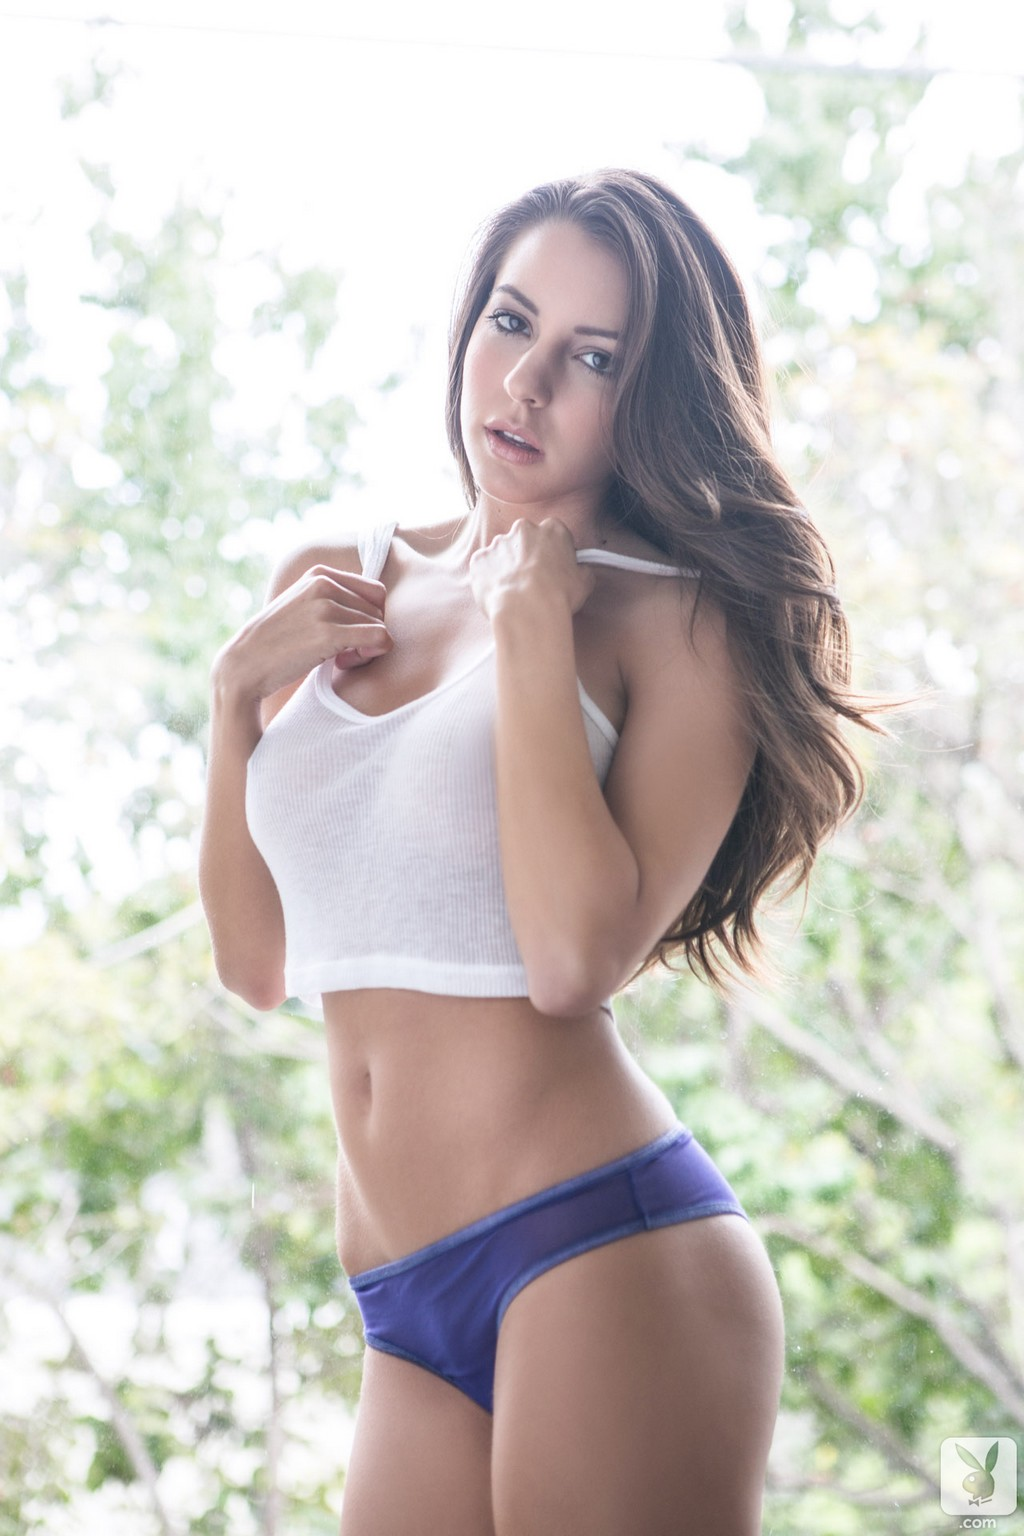 Shelby Chesnes Nude – Simple Pleasures (60 Photos + GIFs & Video)